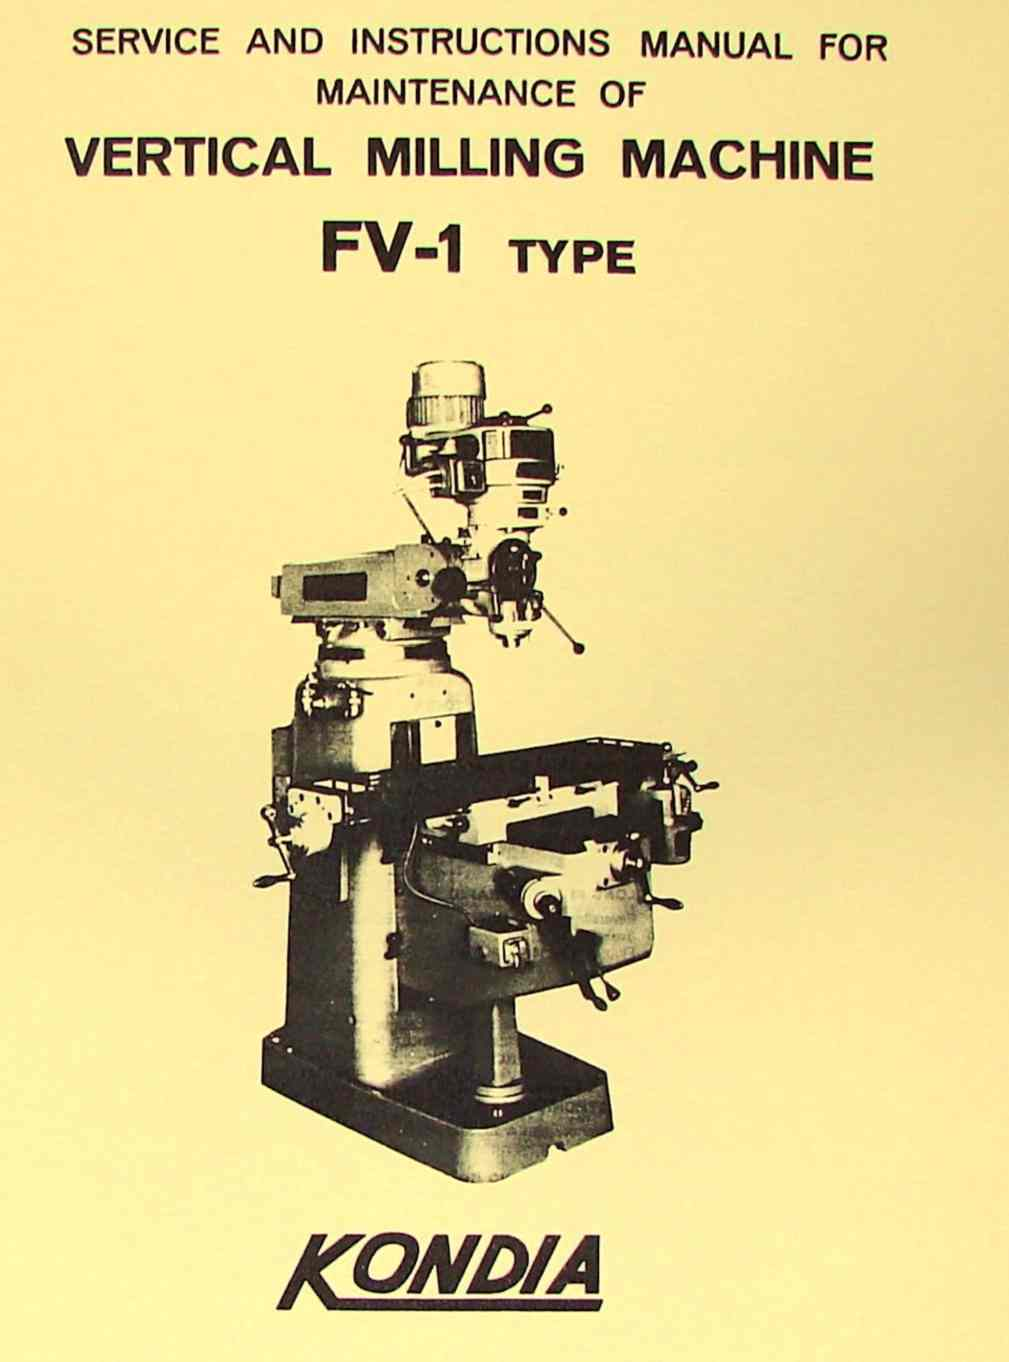 0423 kondia fv 1 milling machine operator's manual ozark tool manuals  at virtualis.co